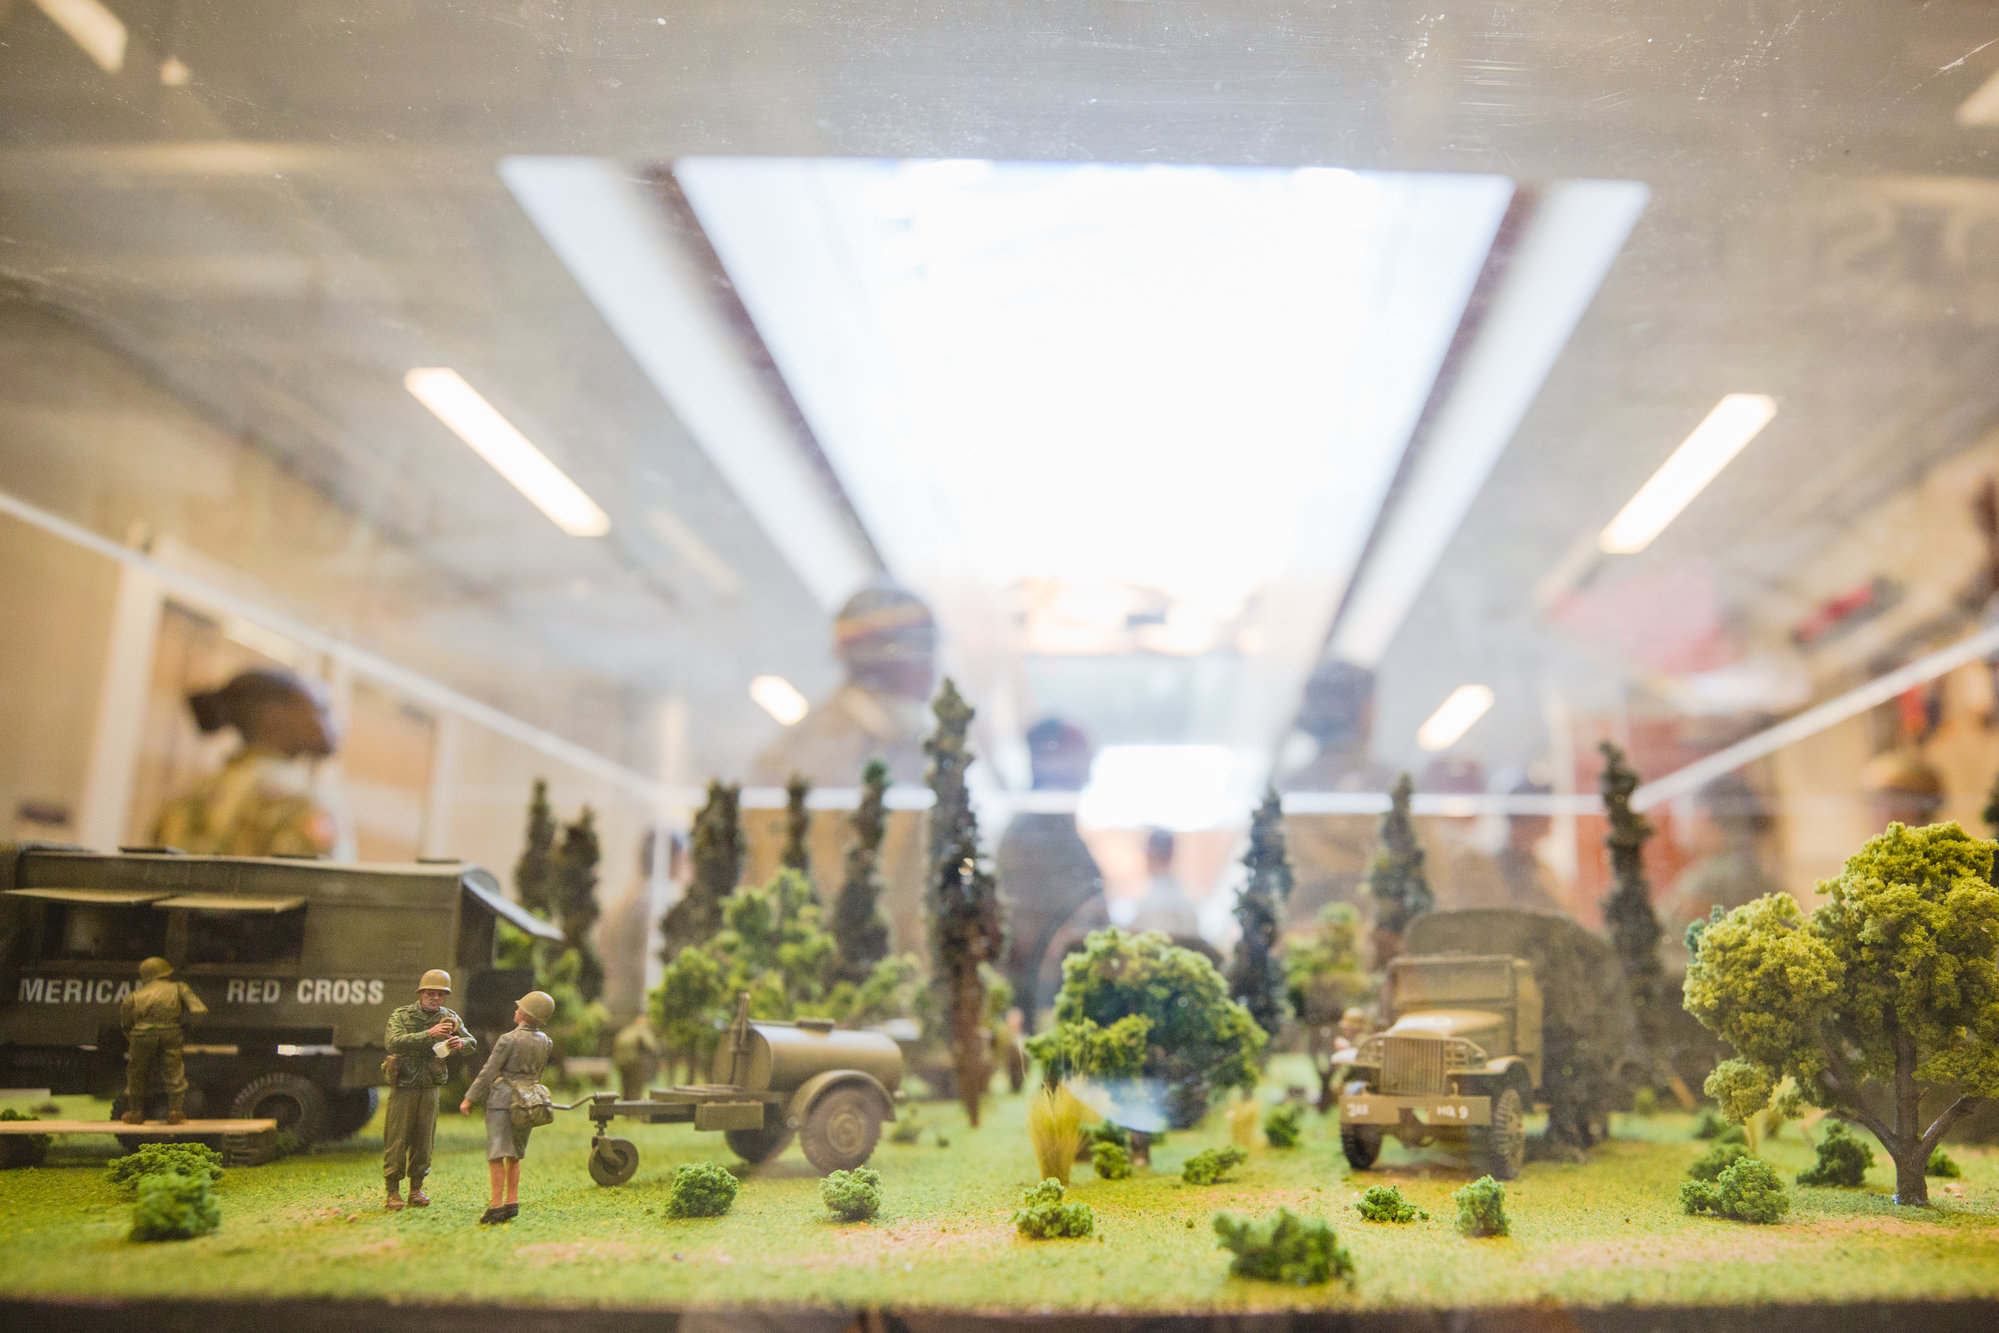 A model of what a Third Army camp would have looked like during World War II is seen.